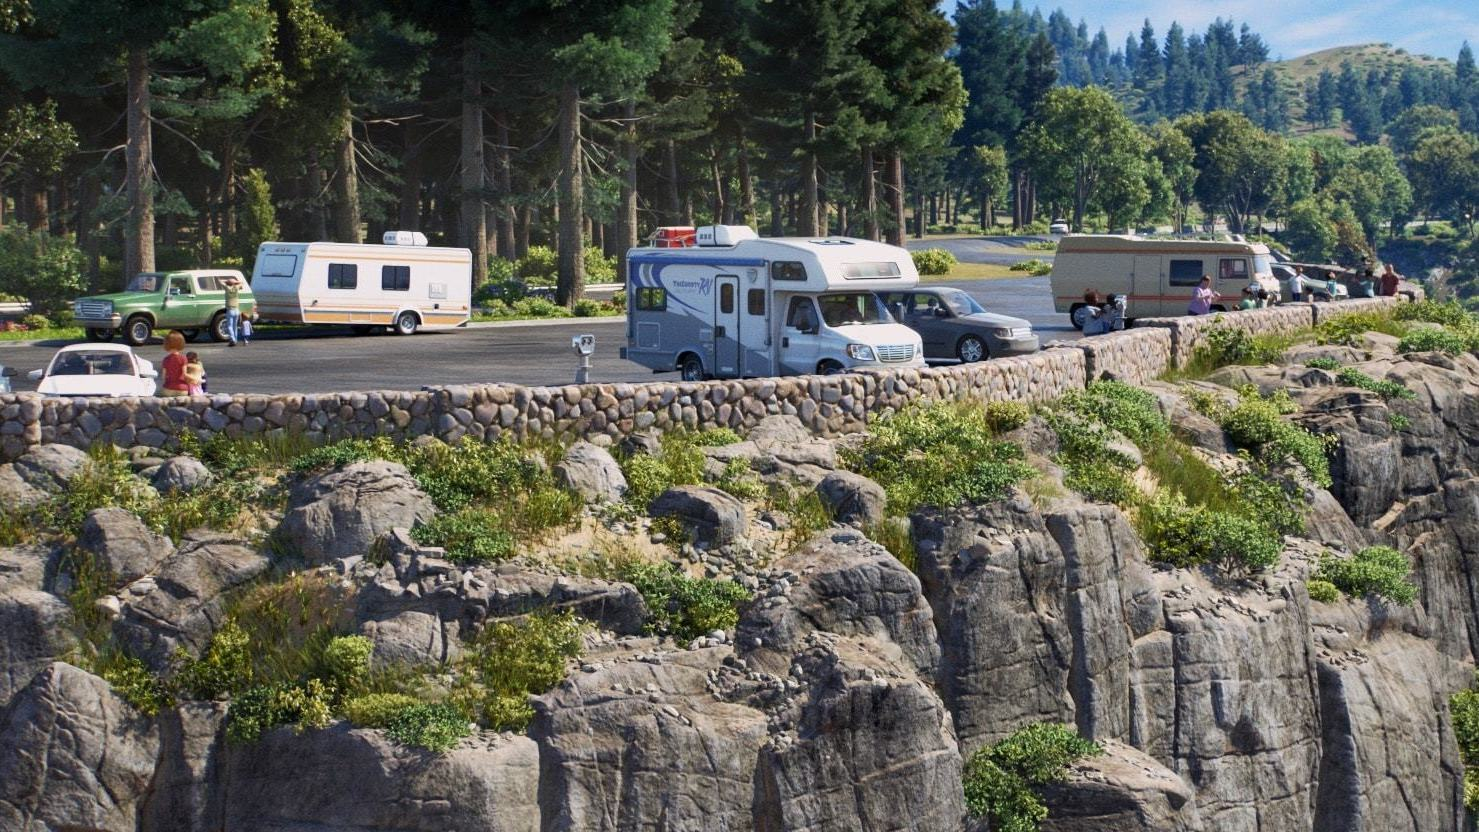 Which Disney-Inspired Destination Should You Visit On an RV Road Trip?